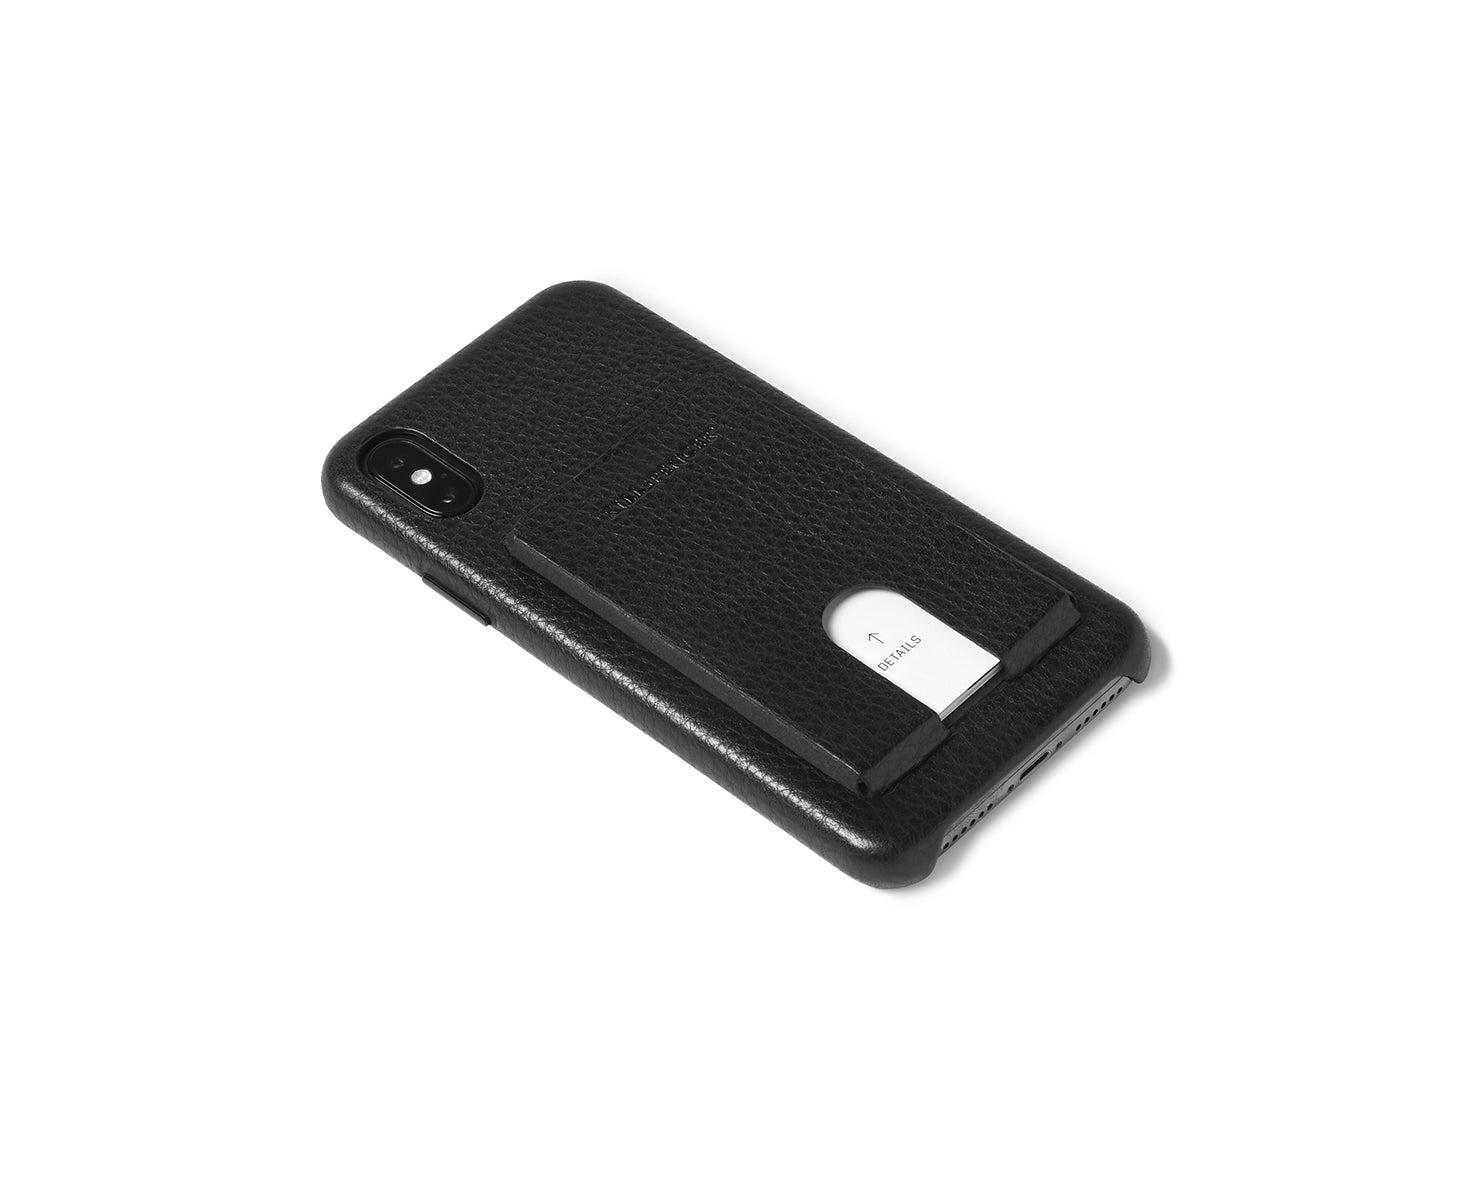 CARD CARRIER 3.0 for iPhone X and Xs | KILLSPENCER® - Black Leather